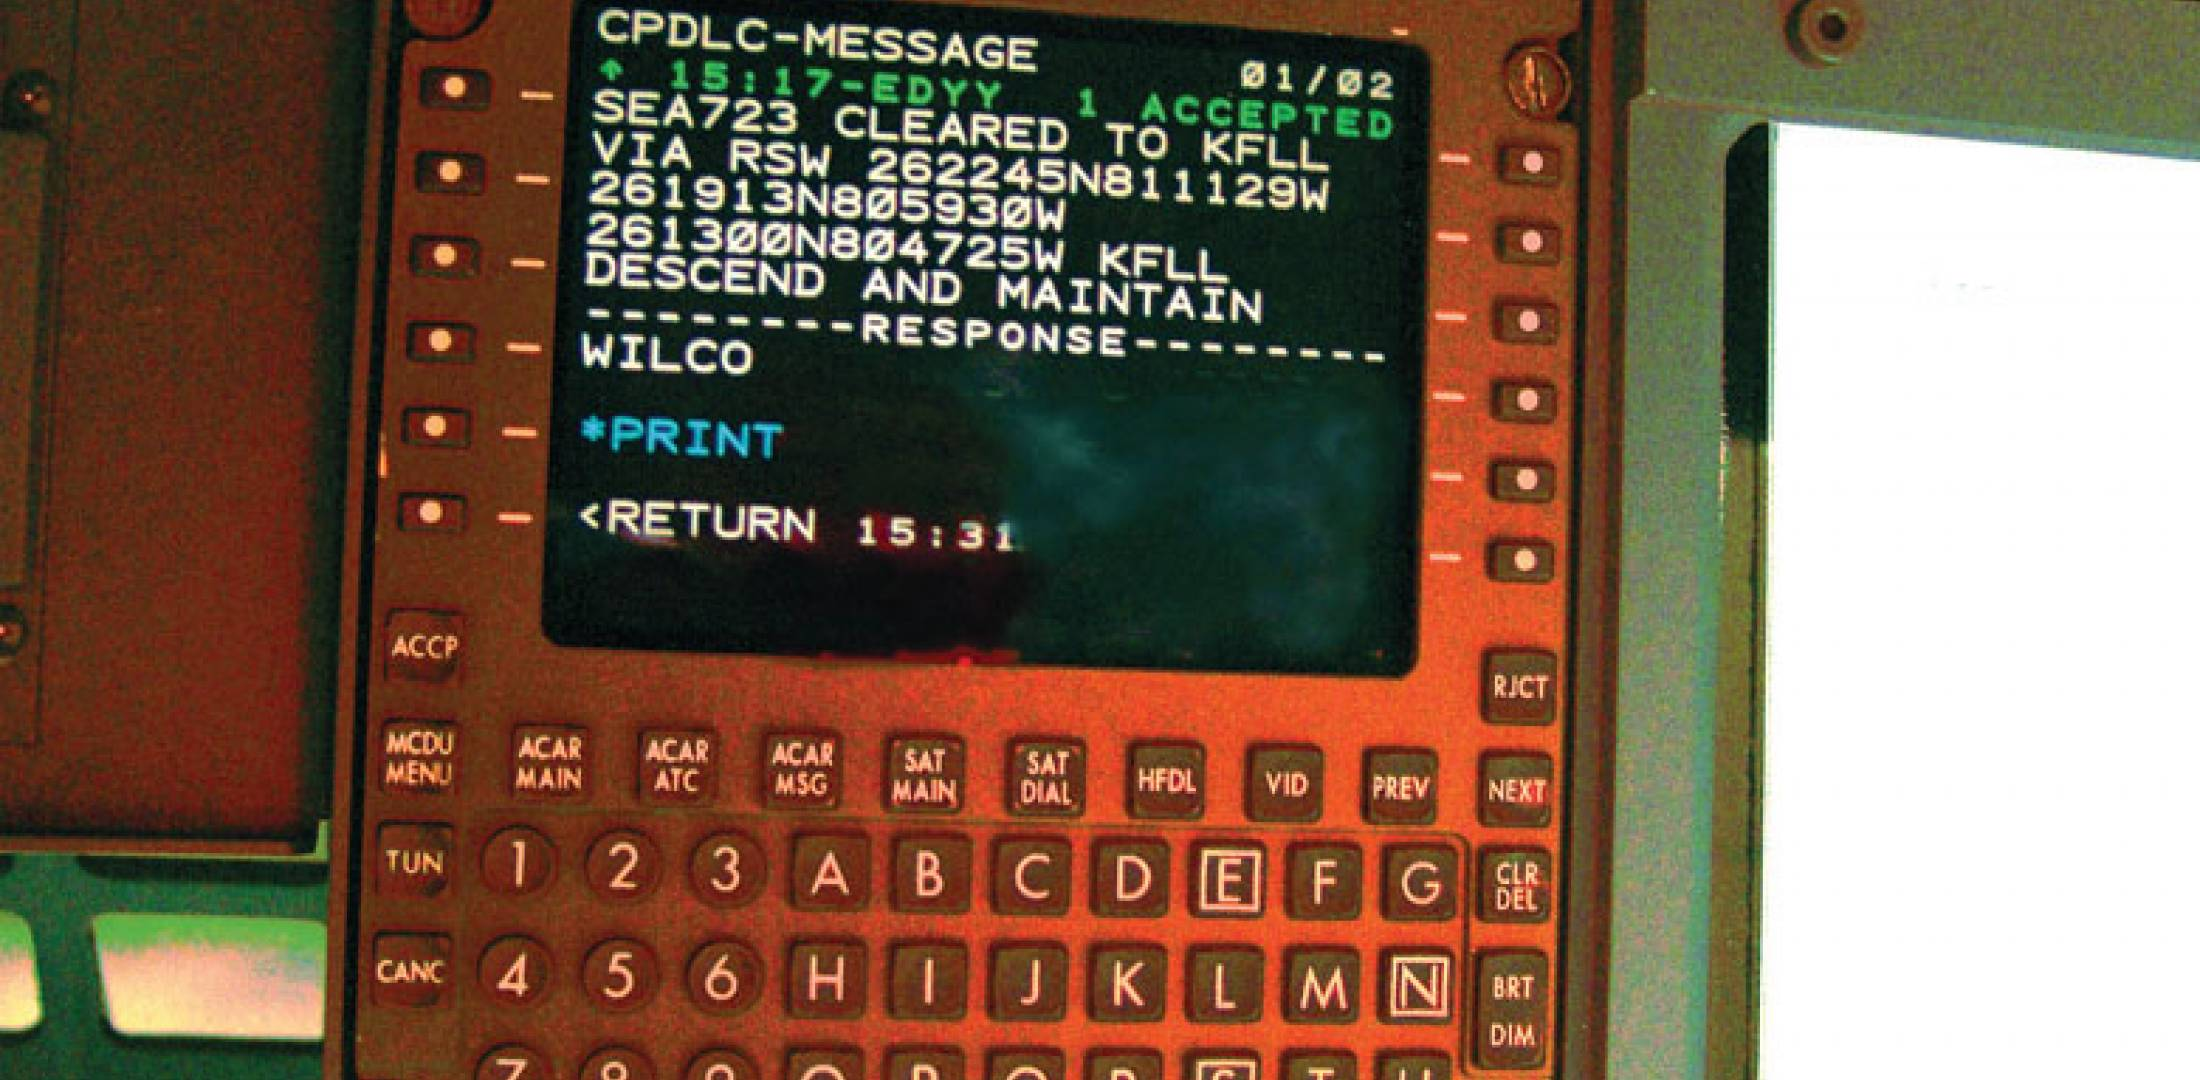 Rockwell Collins IDC-900